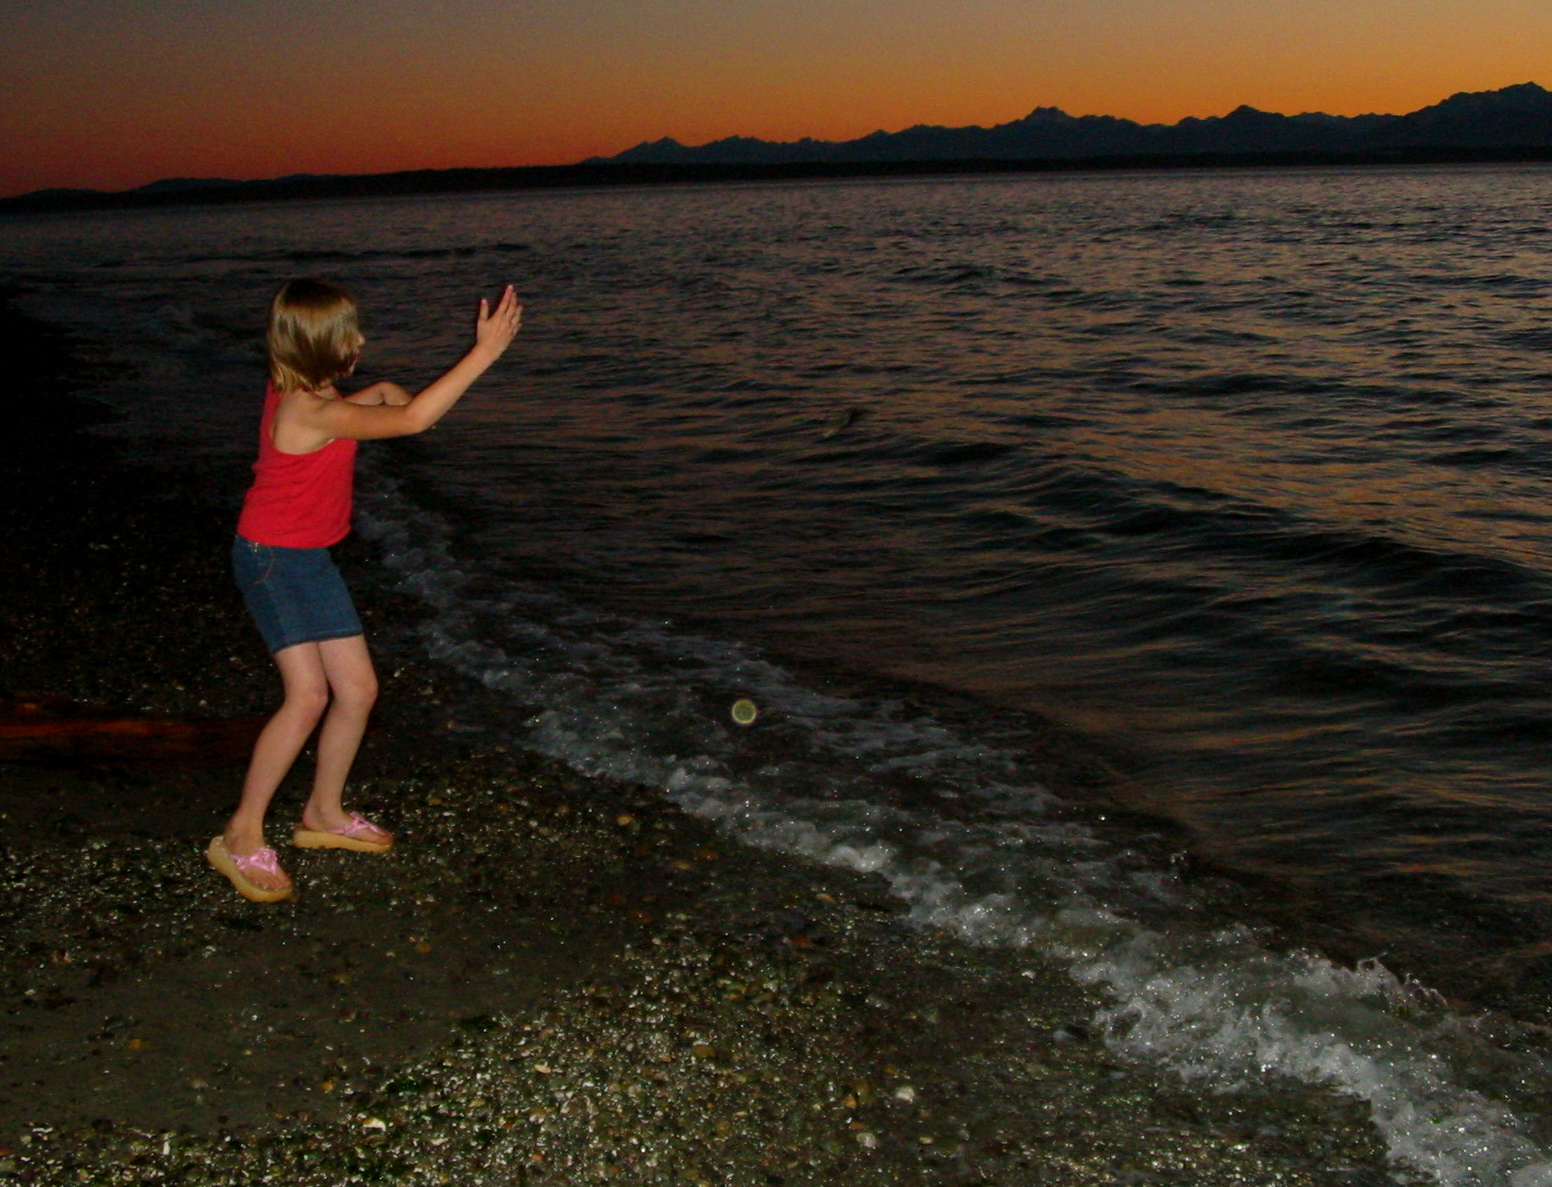 Morgan turns loose a skipping stone into Puget Sound. Across the water sit the Olympics. Carkeek Park, 16 June 2004.